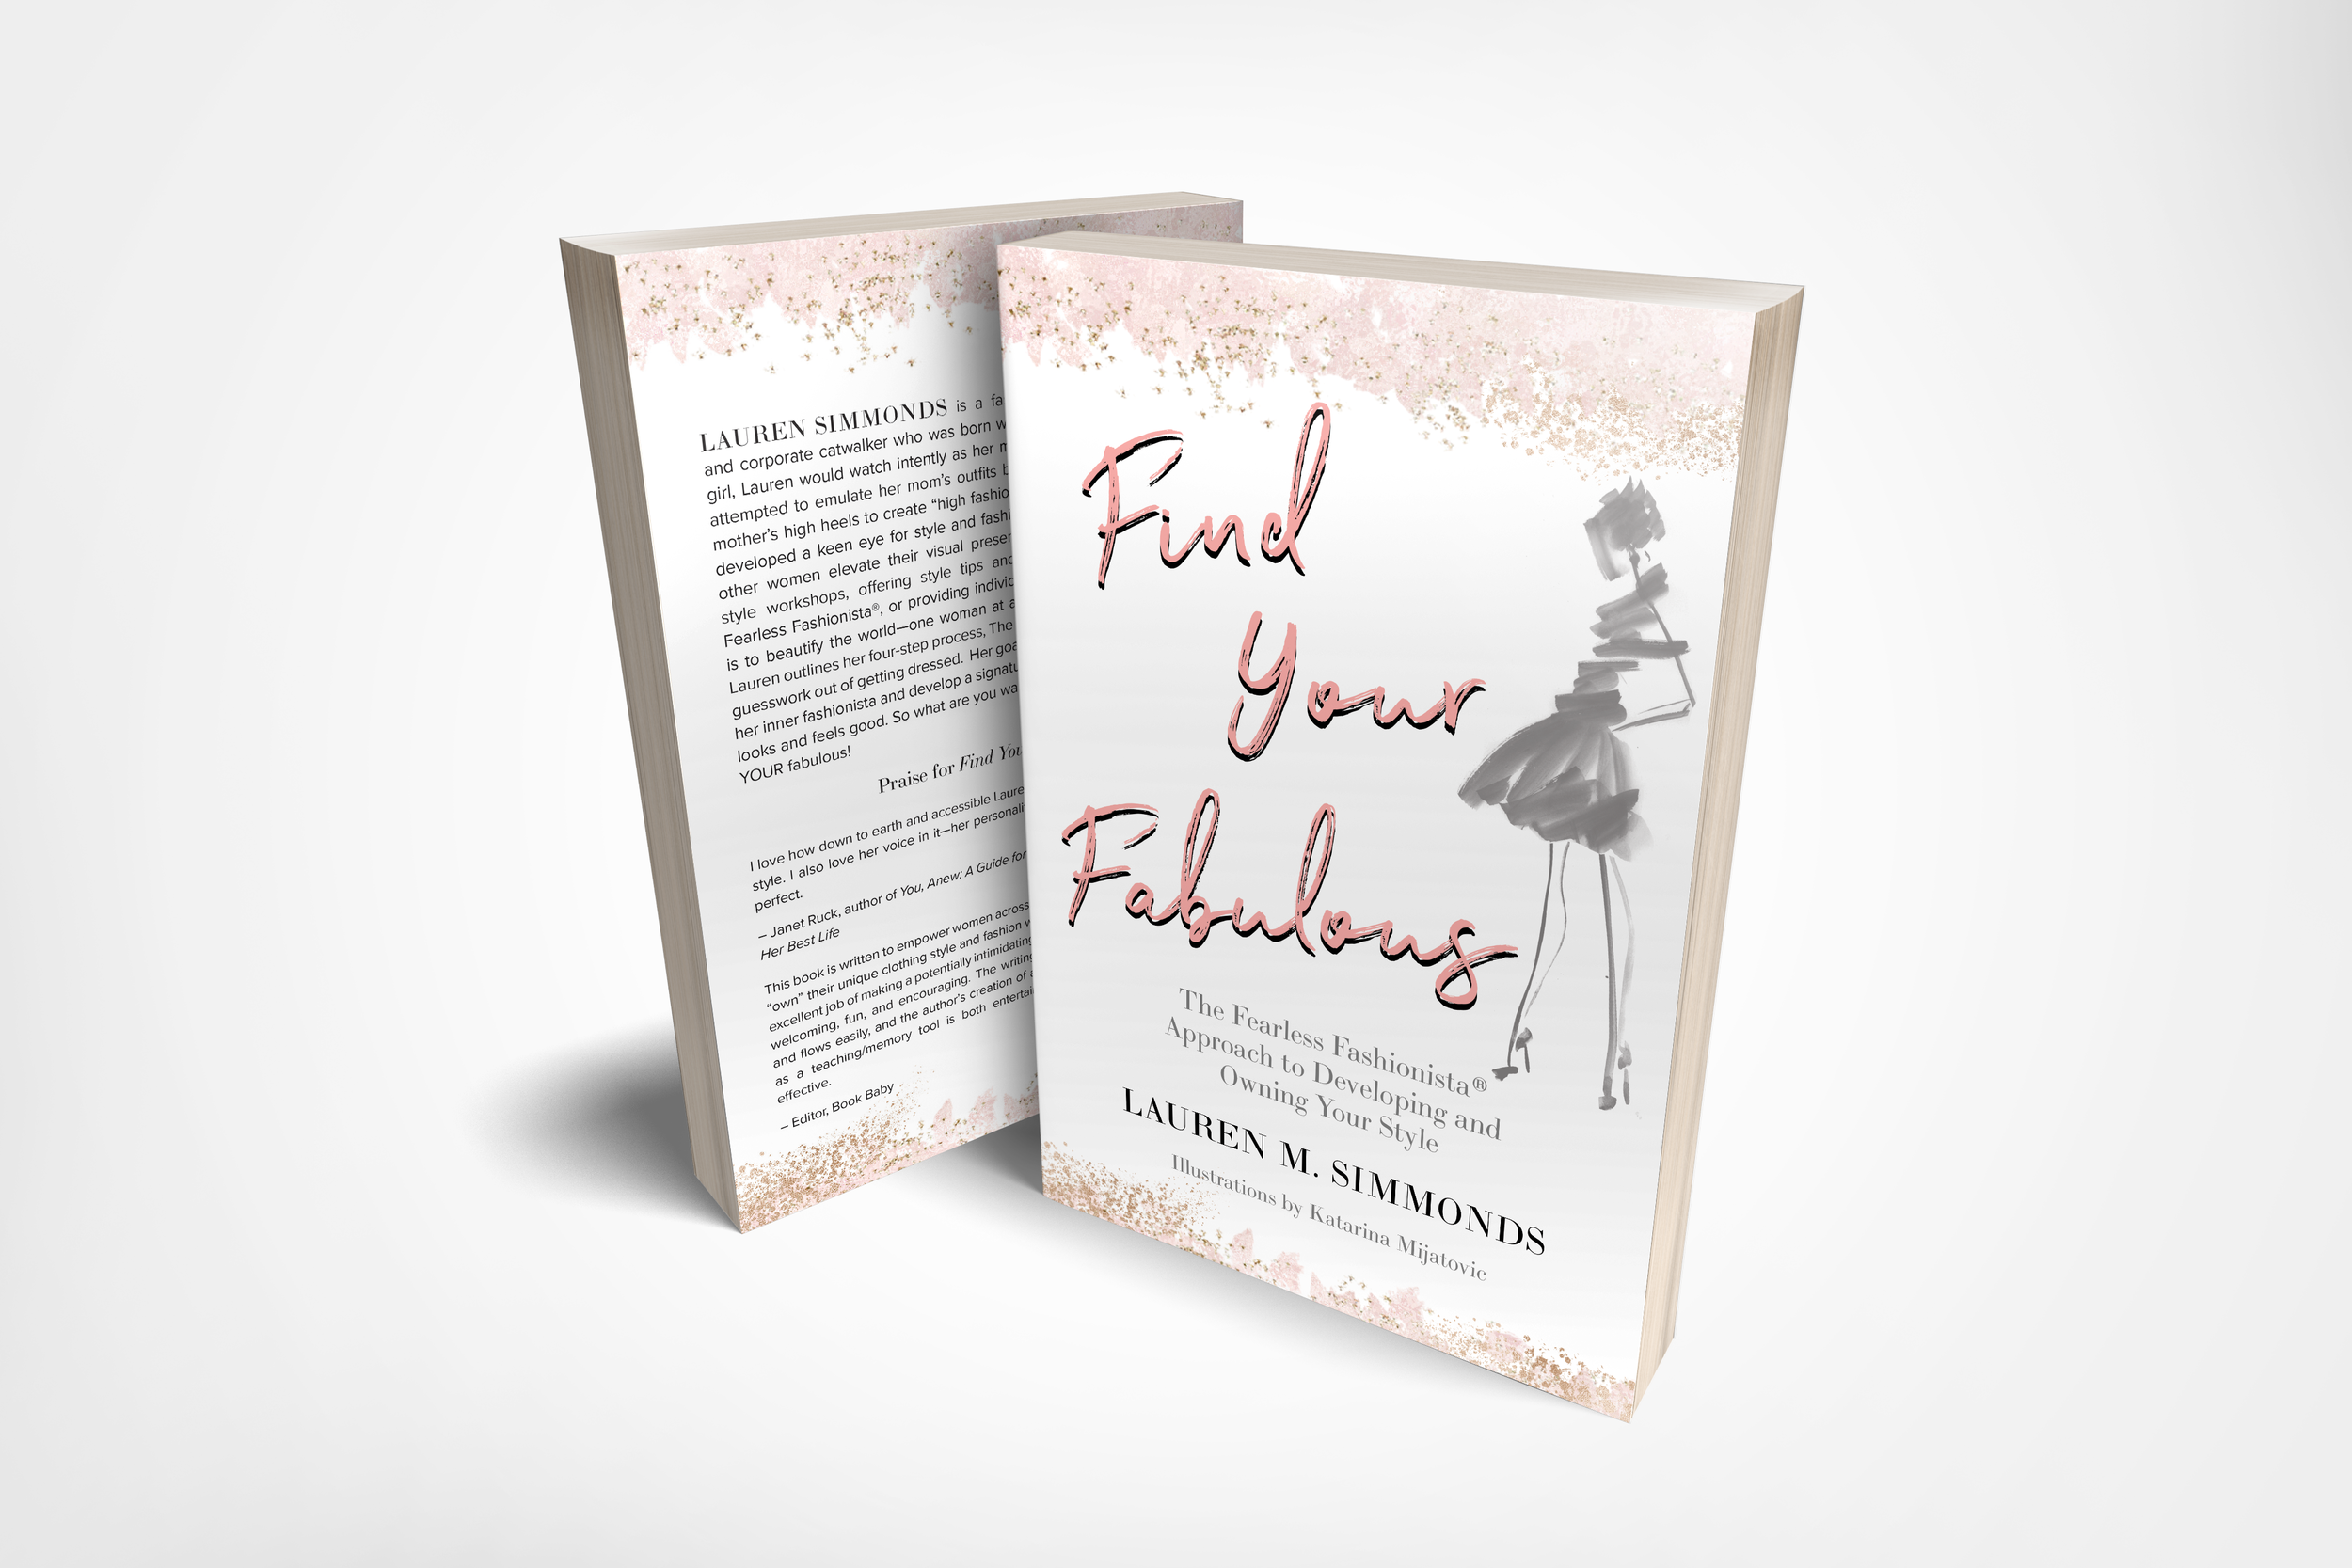 Find Your Fabulous - The Fearless Fashionista